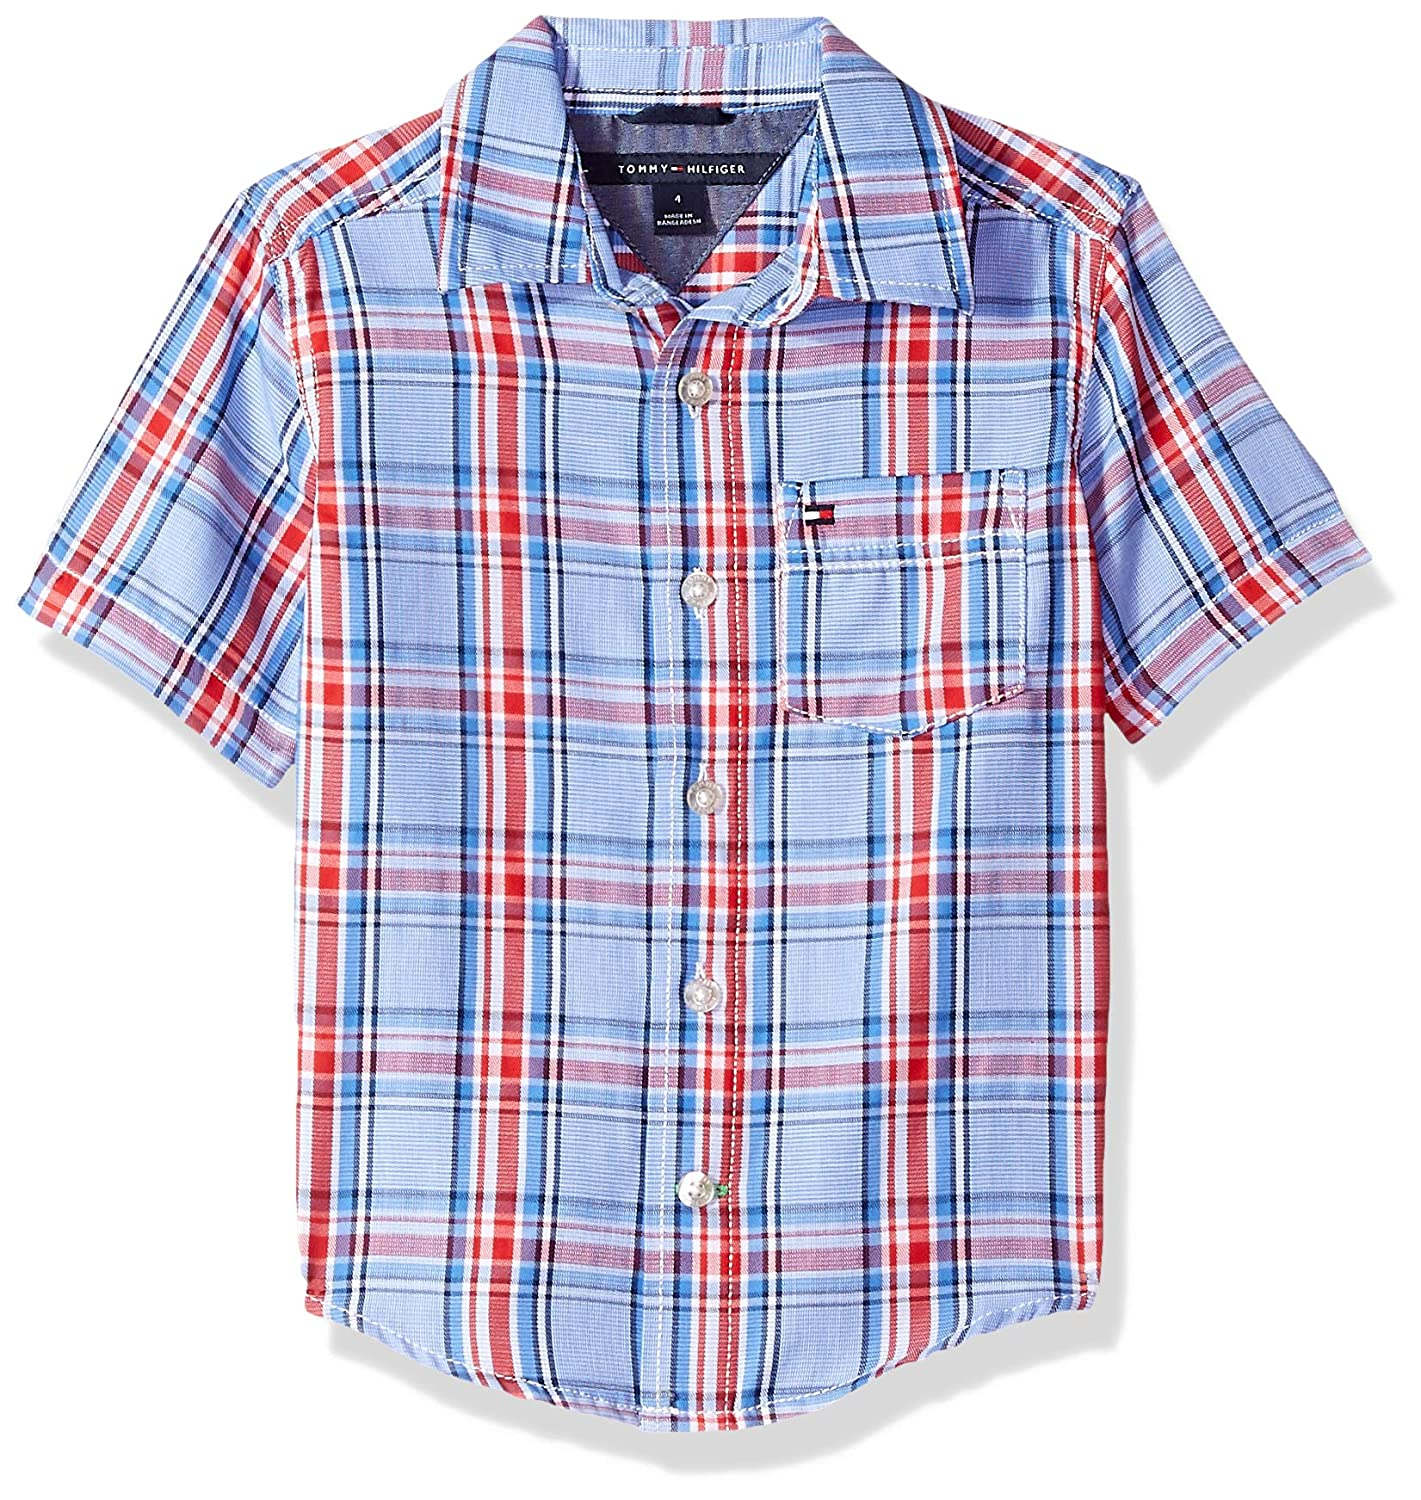 Tommy+Hilfiger Tommy Hilfiger Boys Short Sleeve Woven Shirt